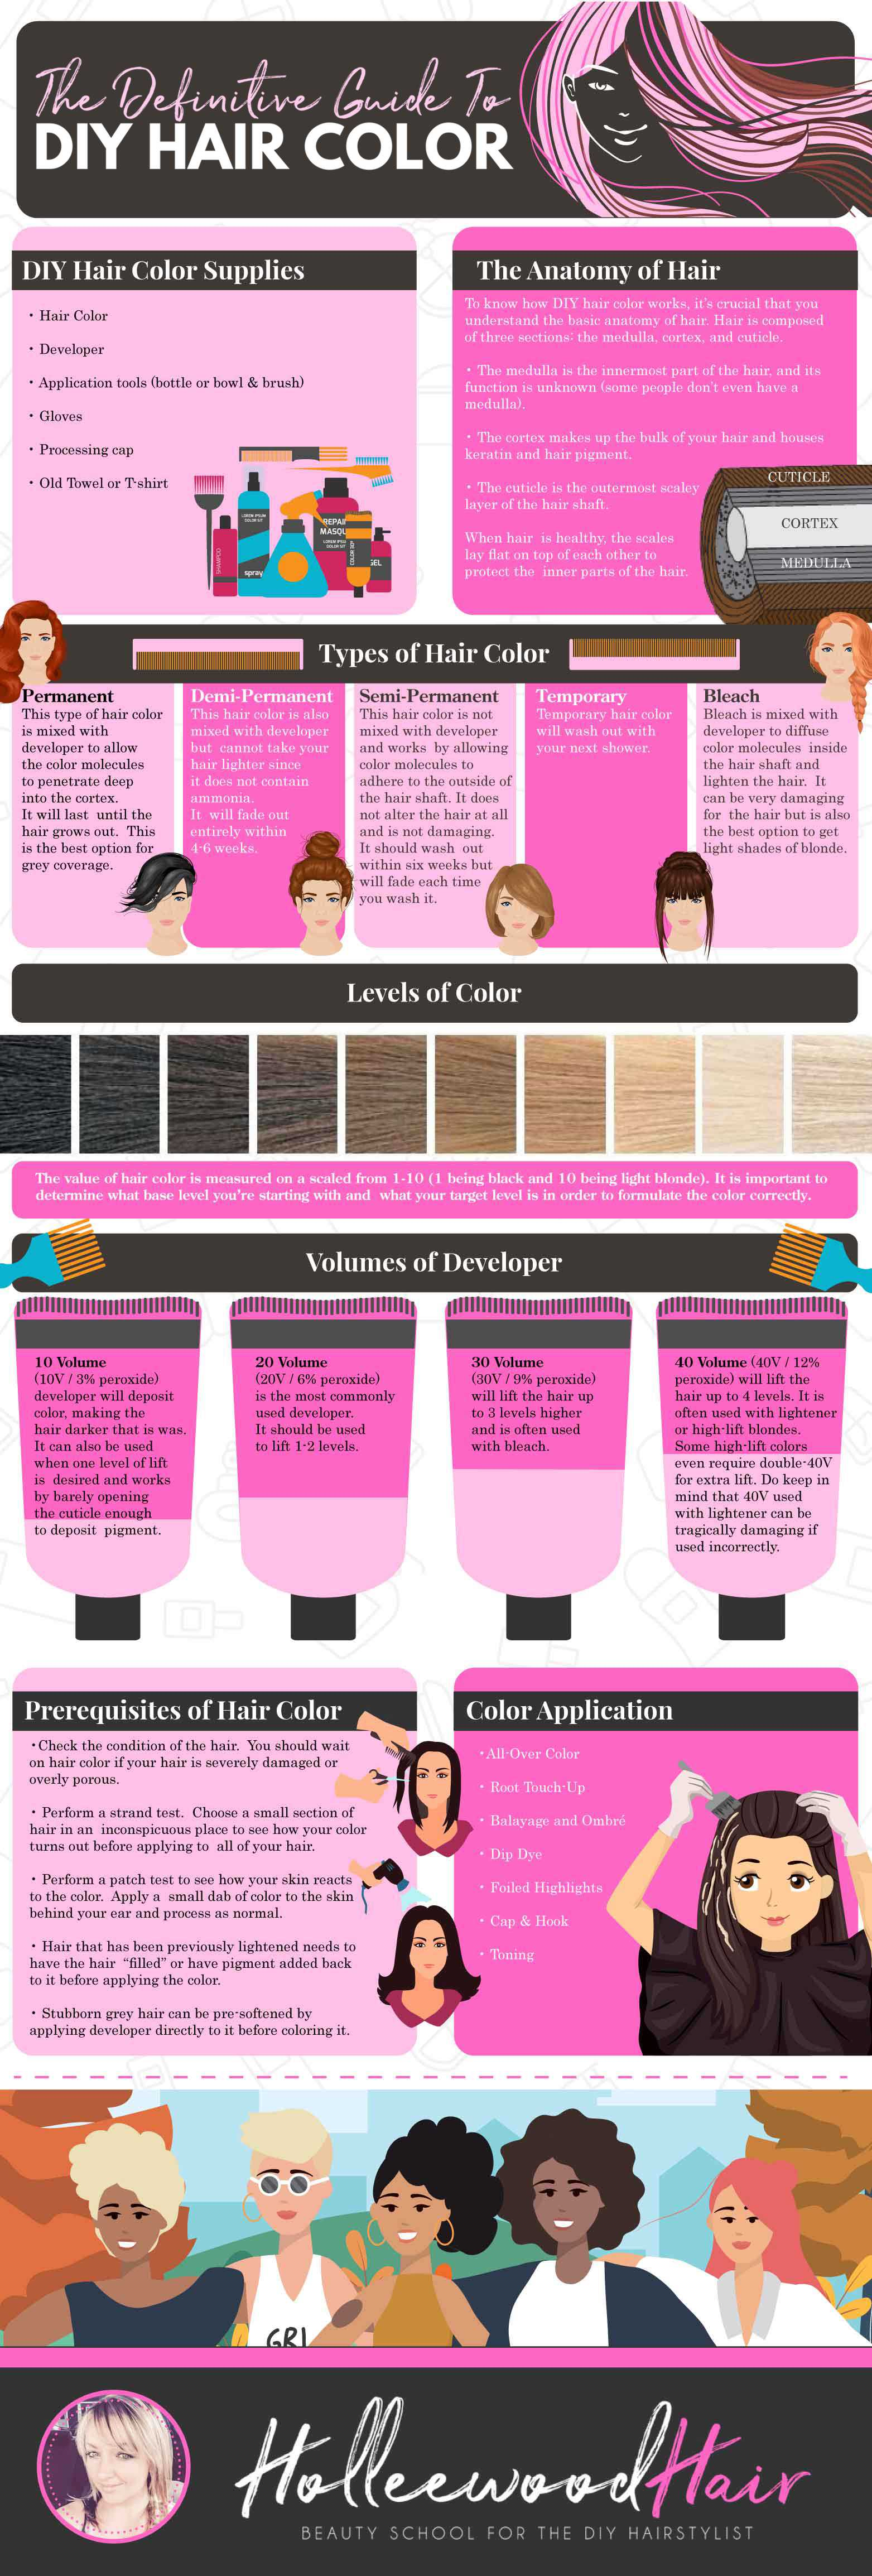 DIY Hair Color A Comprehensive Guide To Home Coloring